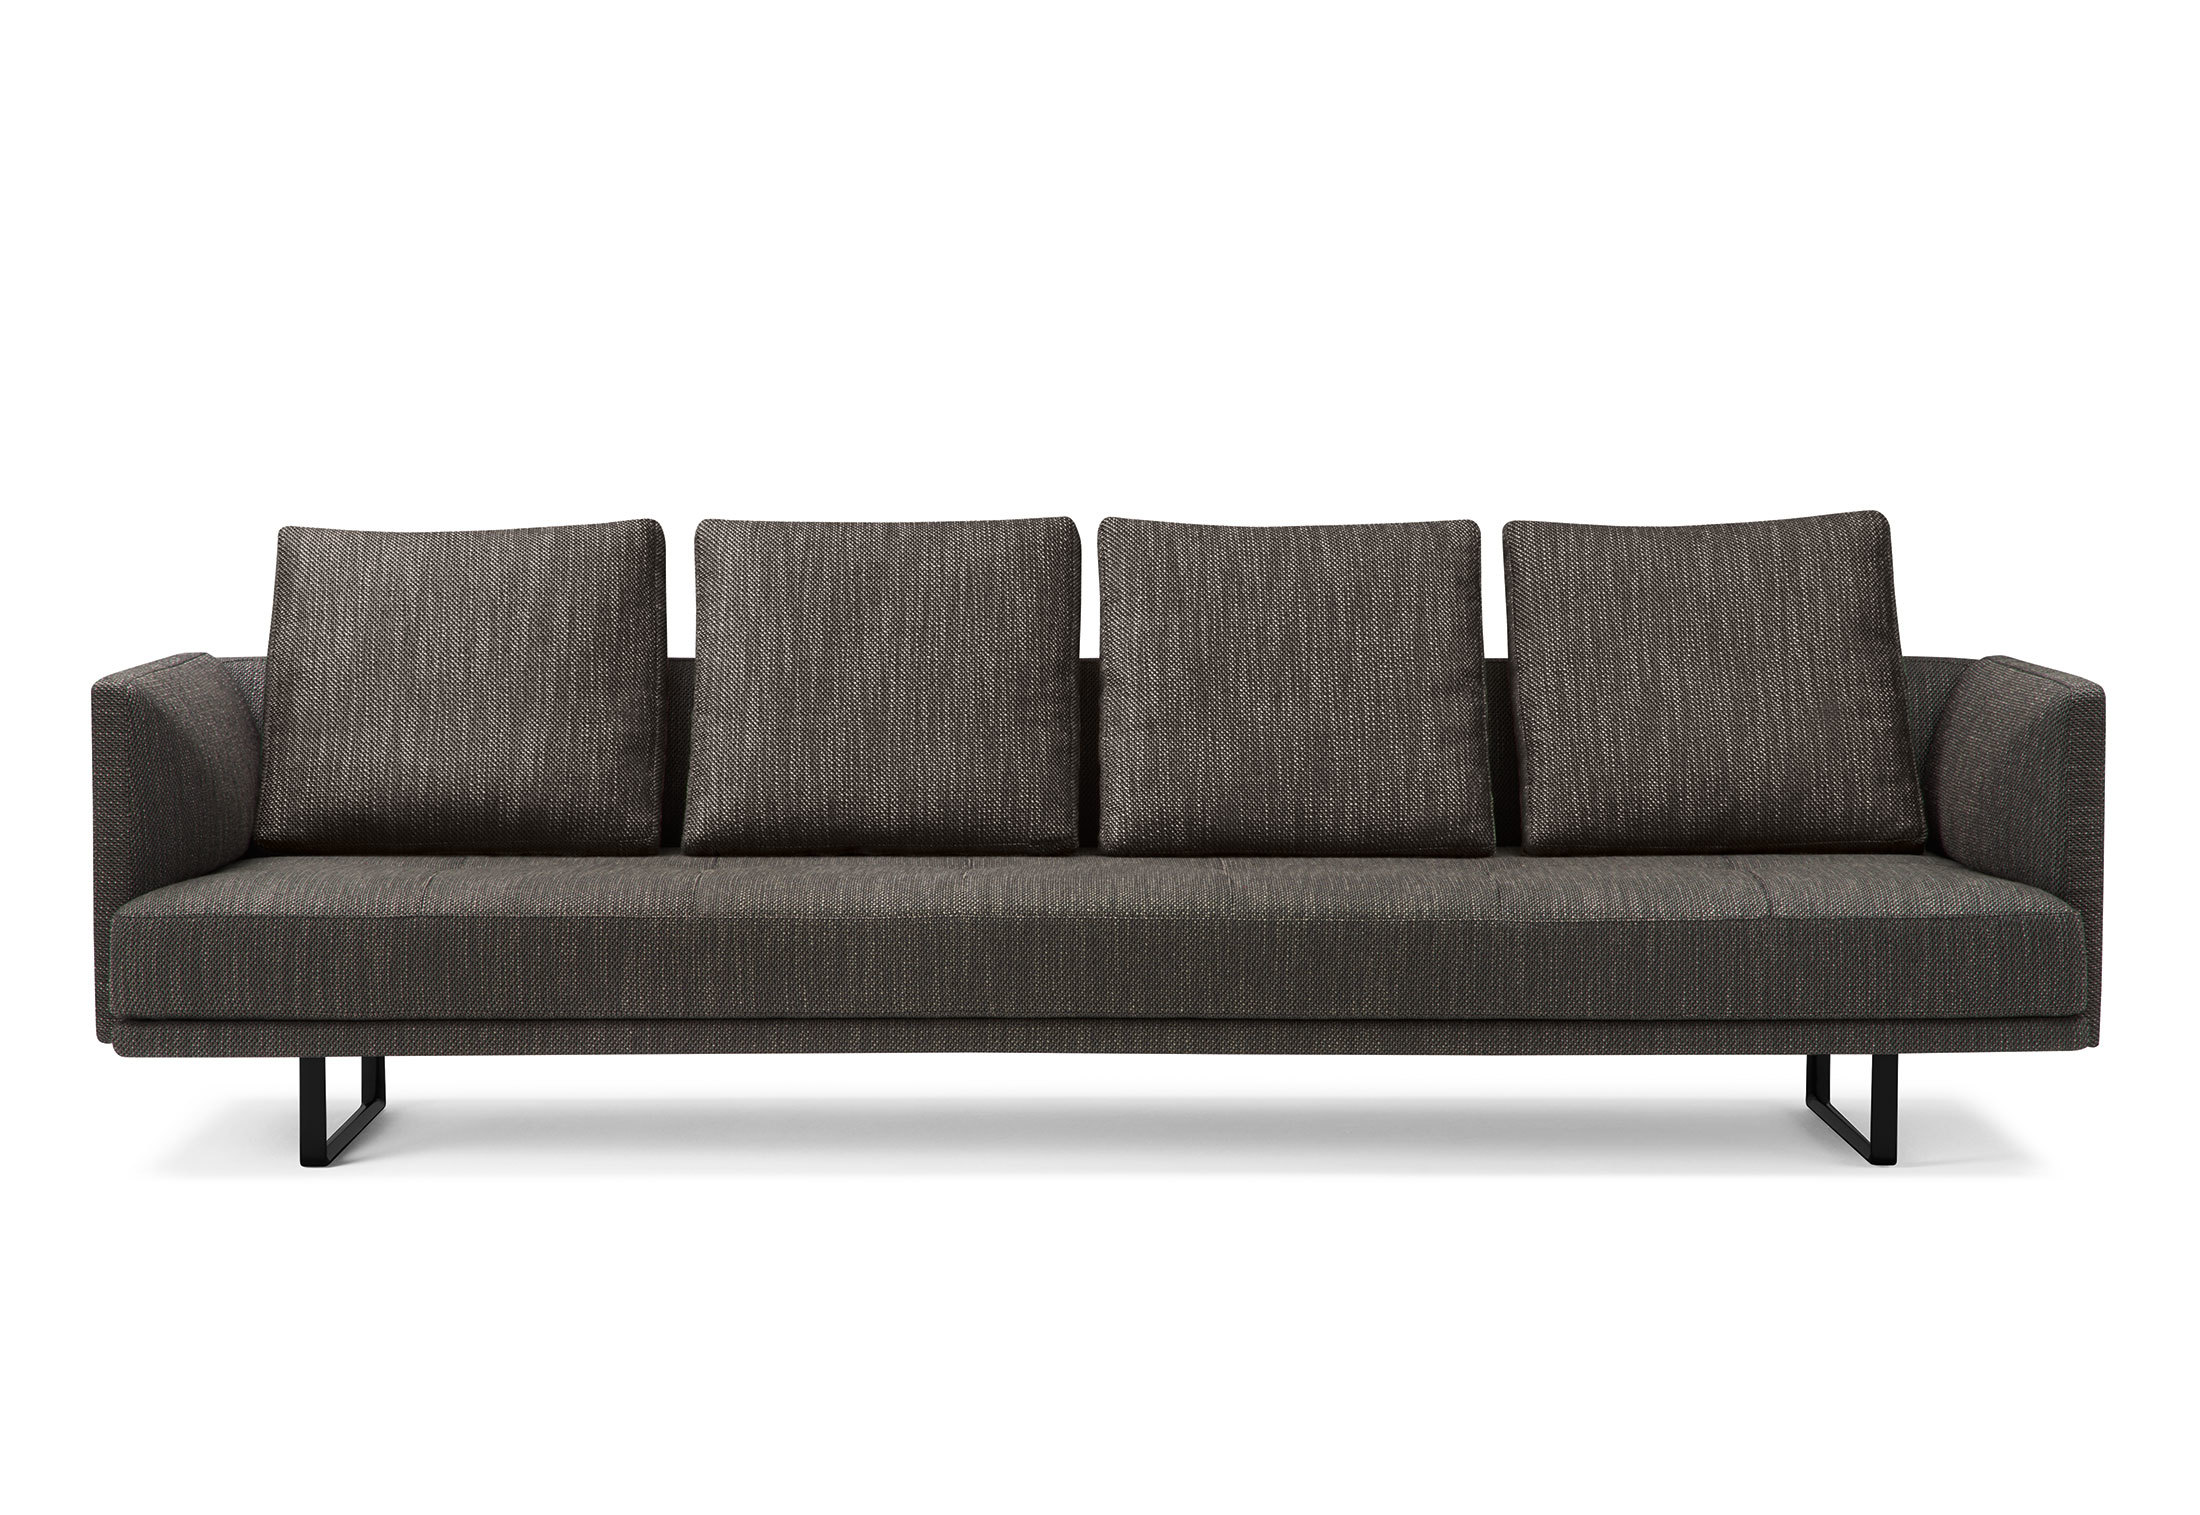 prime time sofa by walter knoll stylepark. Black Bedroom Furniture Sets. Home Design Ideas